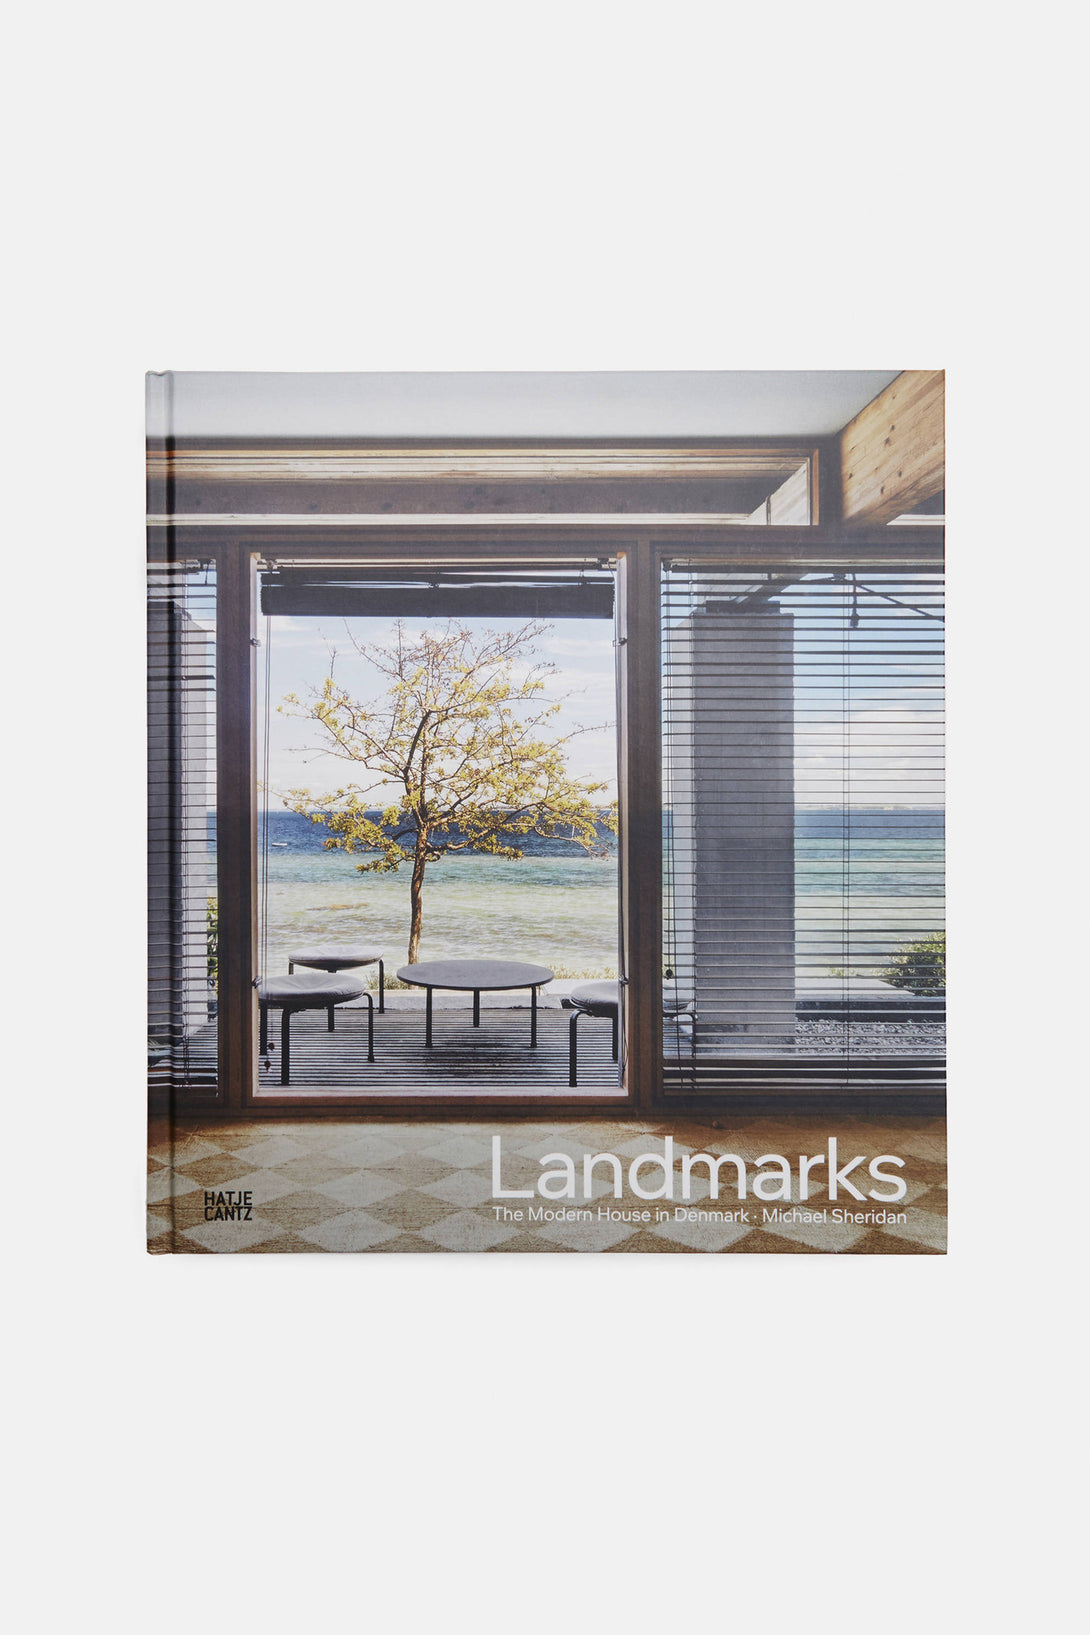 Landmarks: The Modern House in Denmark